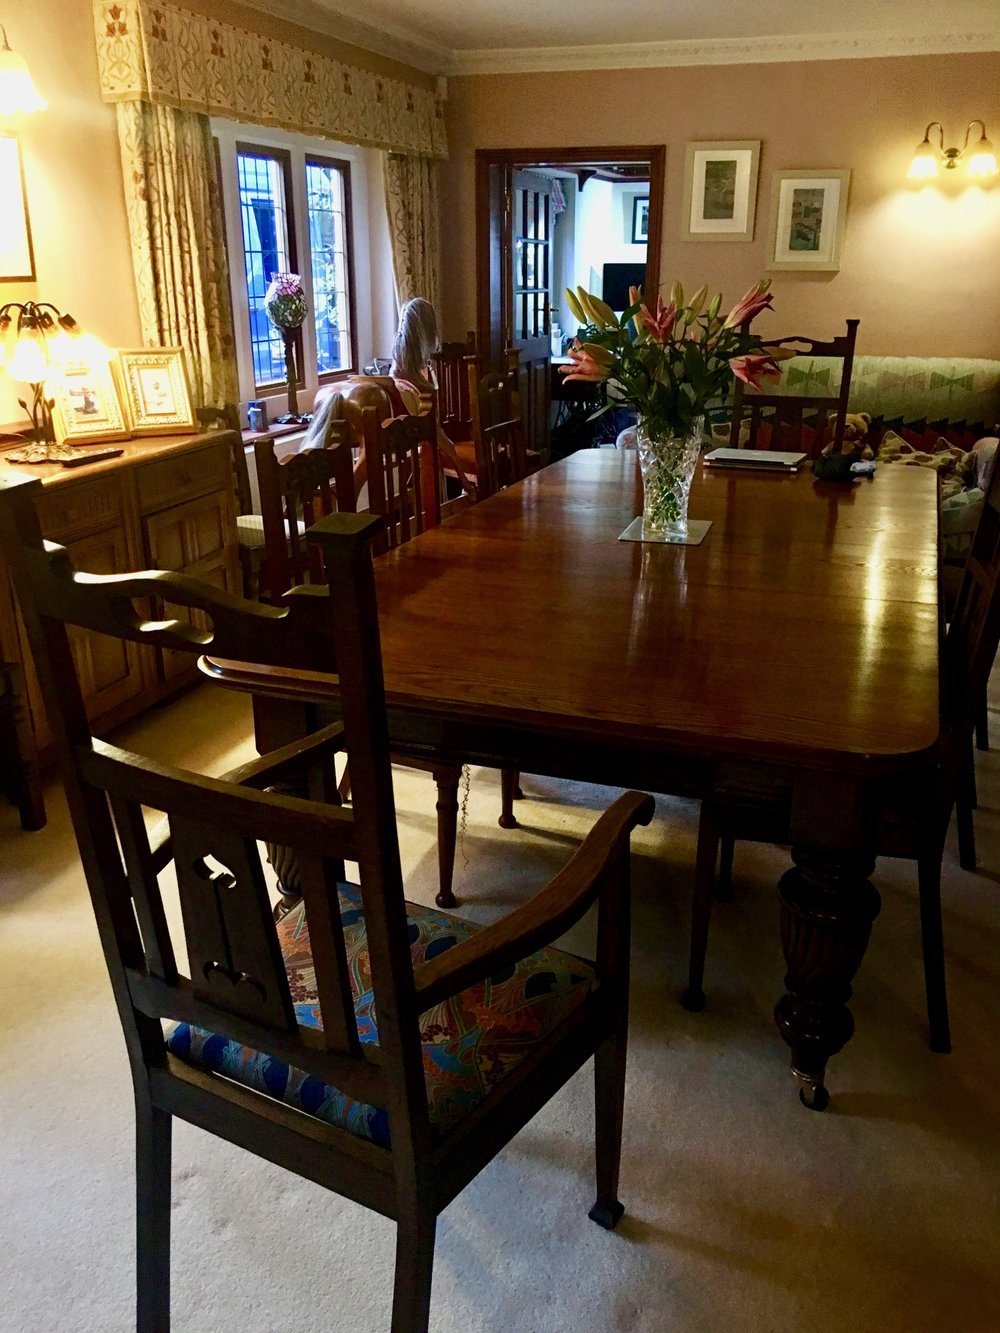 - Beautifully presented chairs, great delivery service.Paul, Gloucestershire